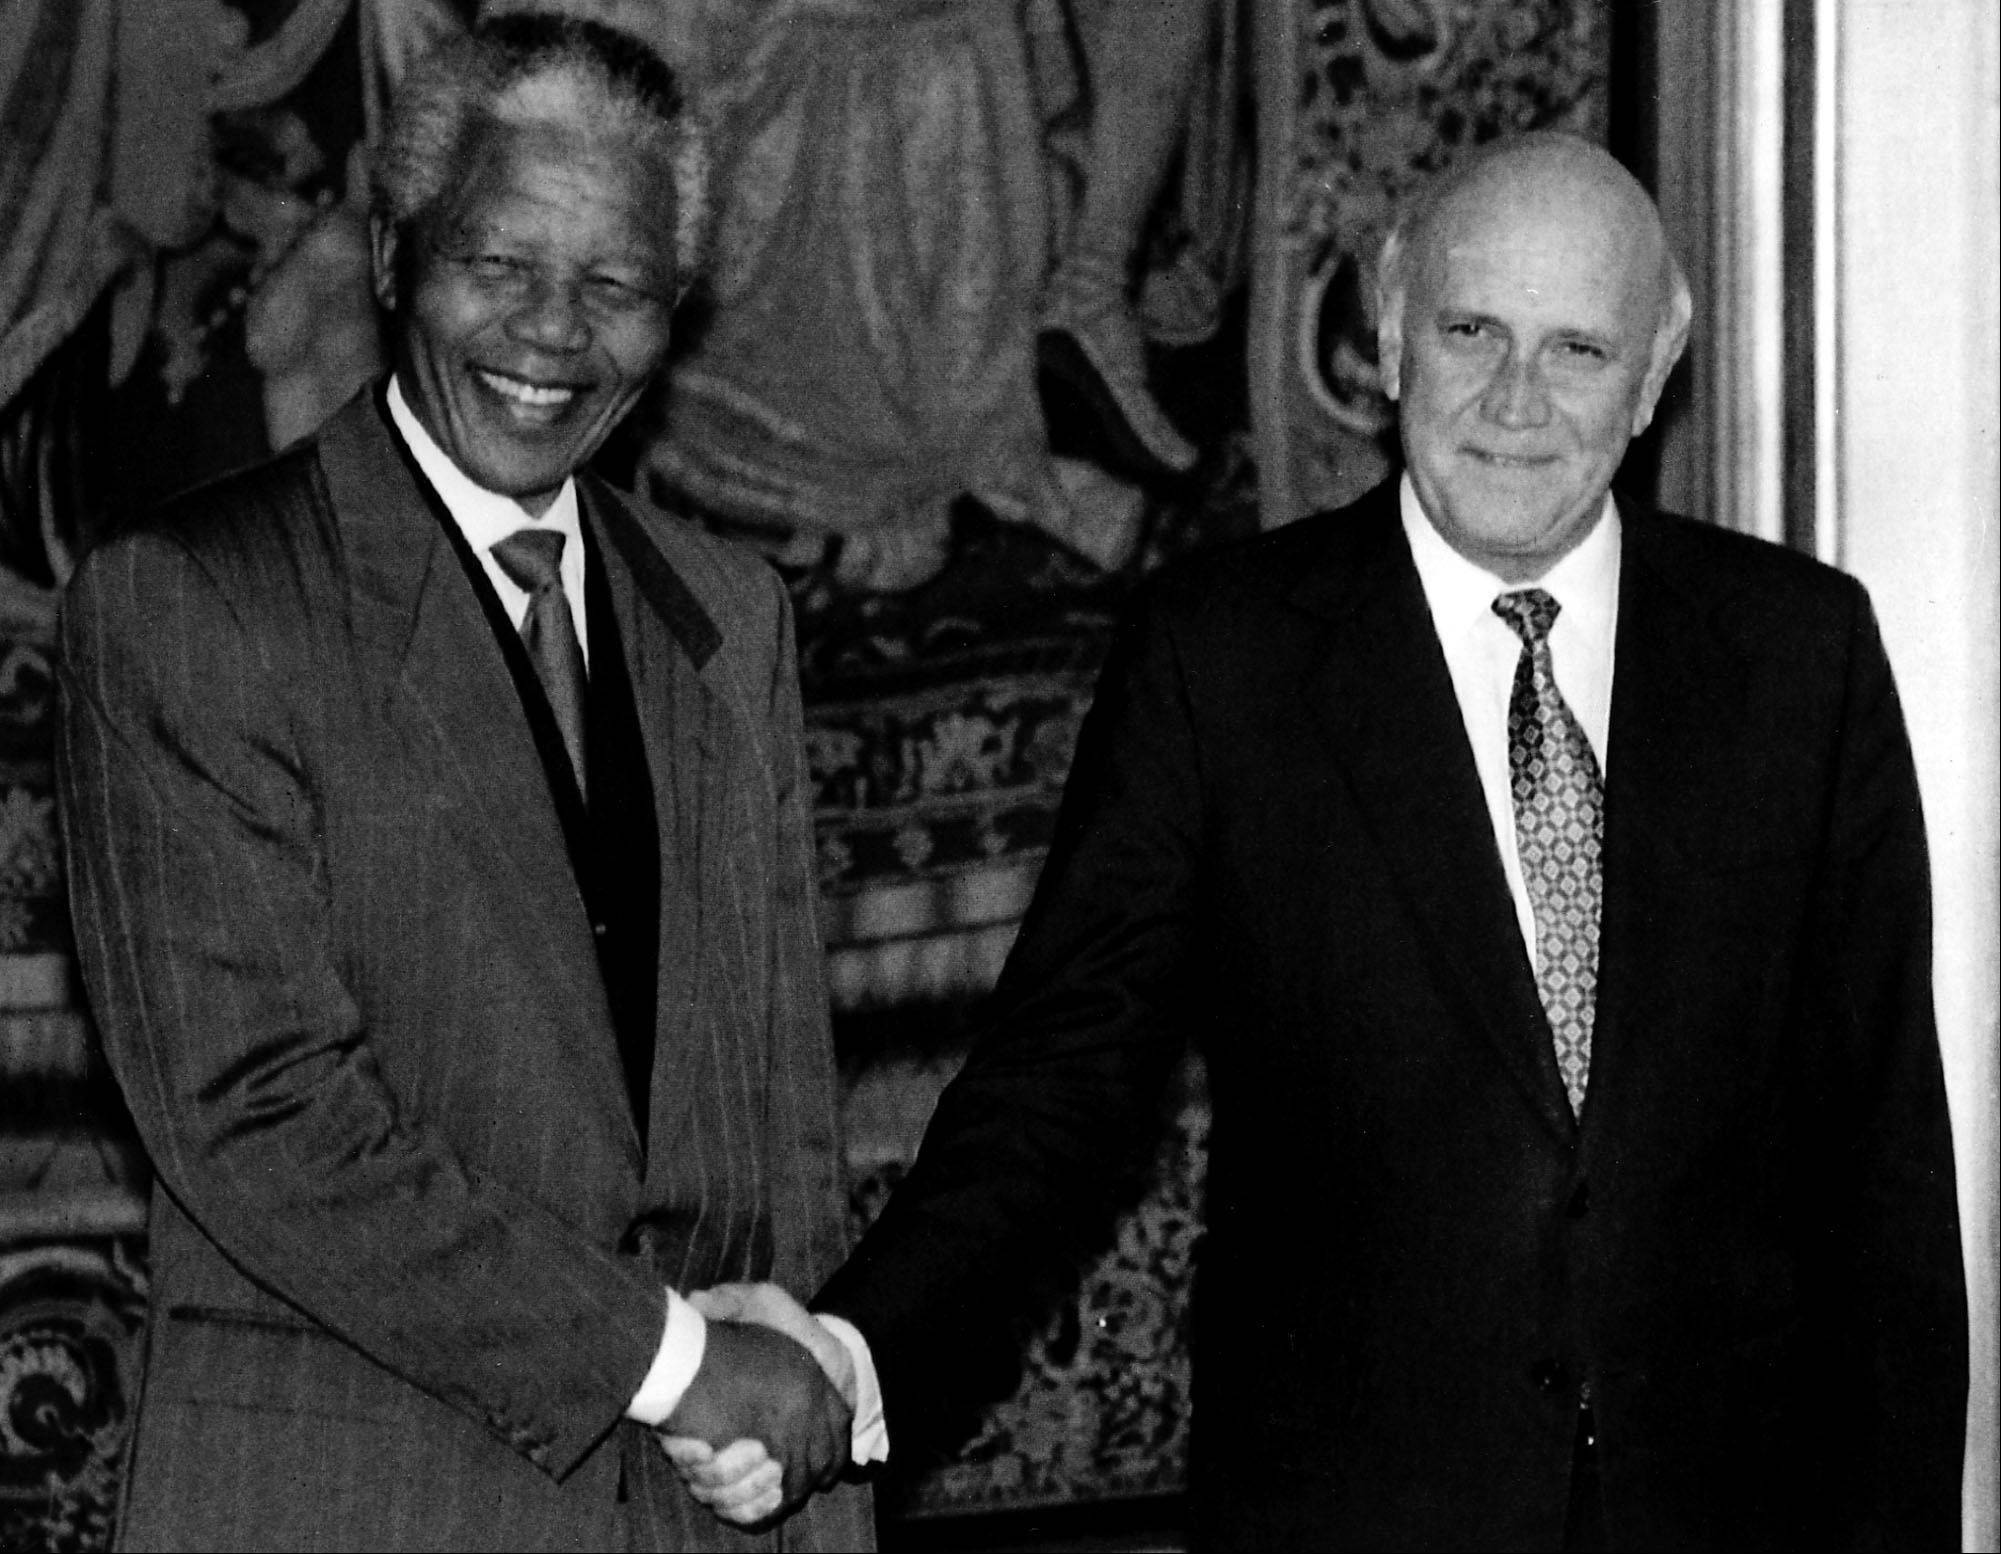 The two Nobel Peace Prize winners, ANC President Nelson Mandela (l) and South African President Frederik Willem de Klerk, shake hands during their meeting in Oslo, Thursday, December 09, 1993.